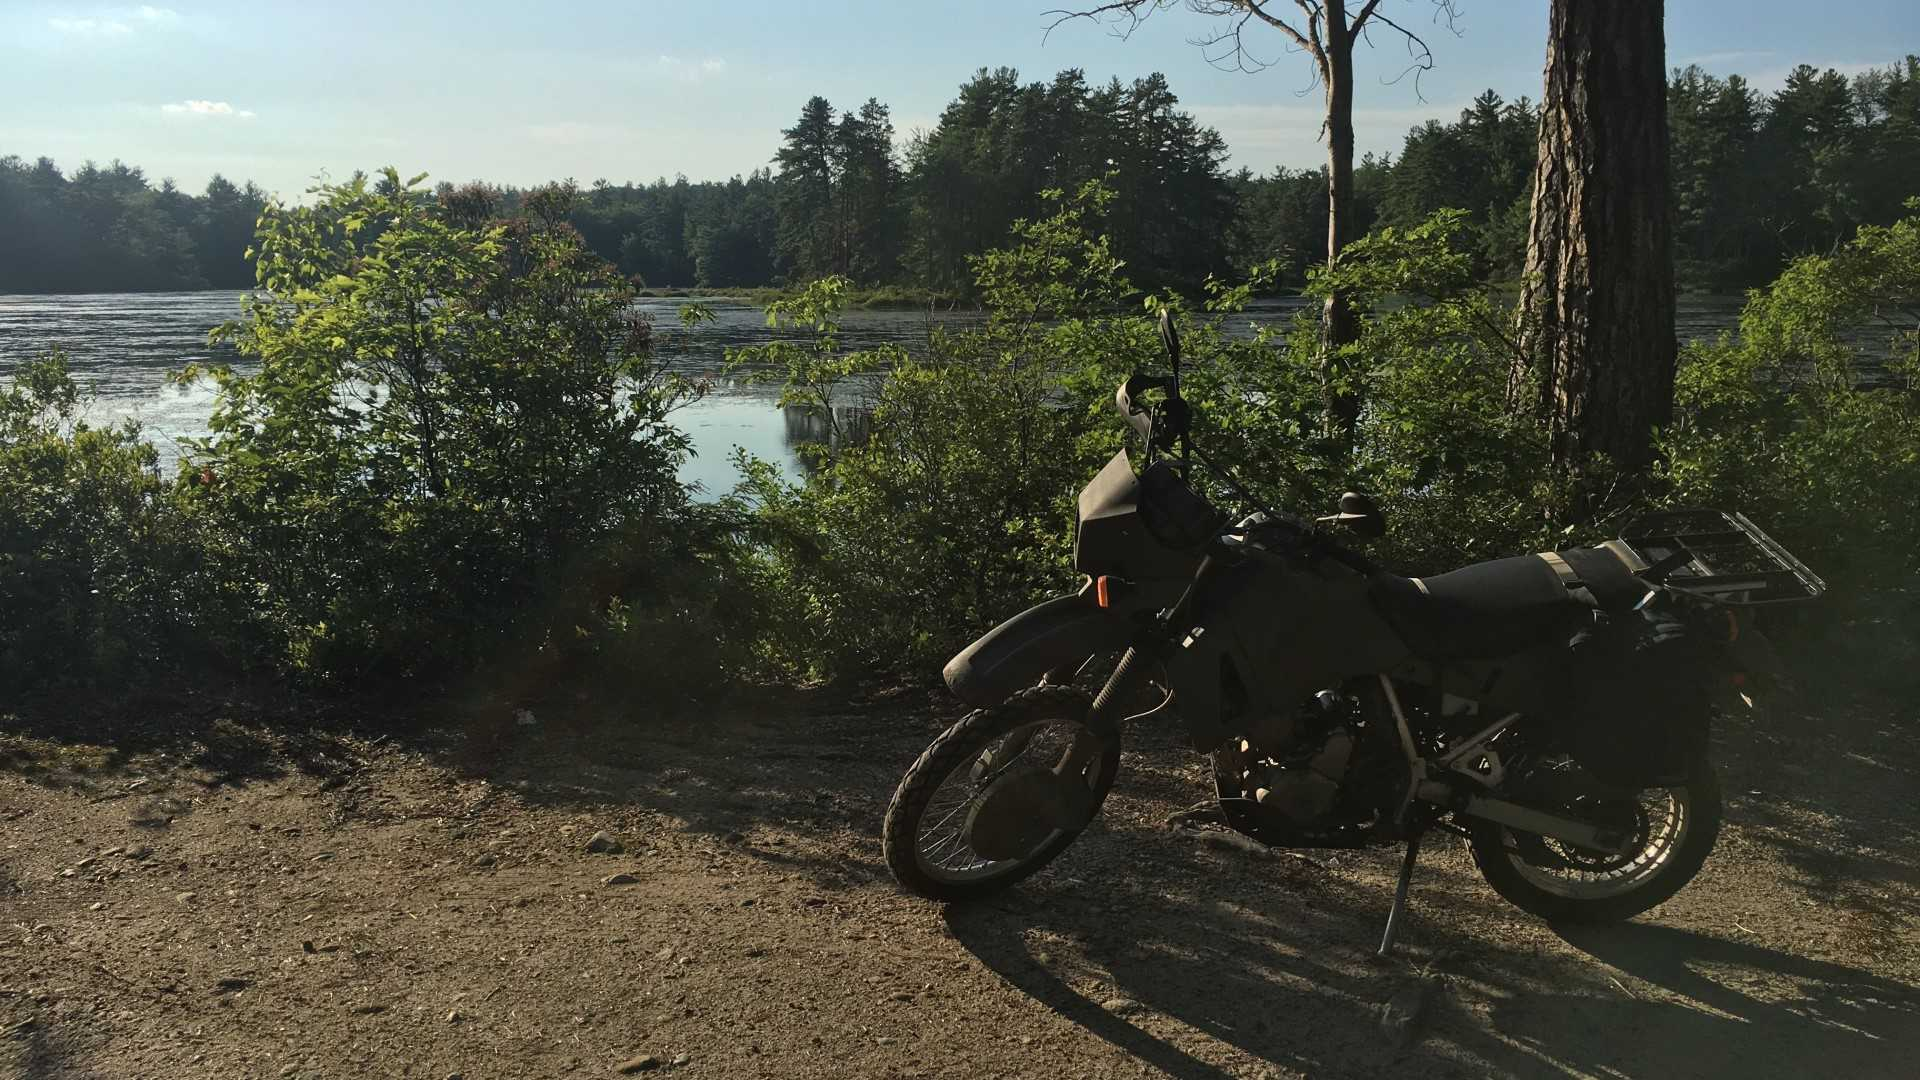 Getting Dirty With My First Dual Sport Motorcycle